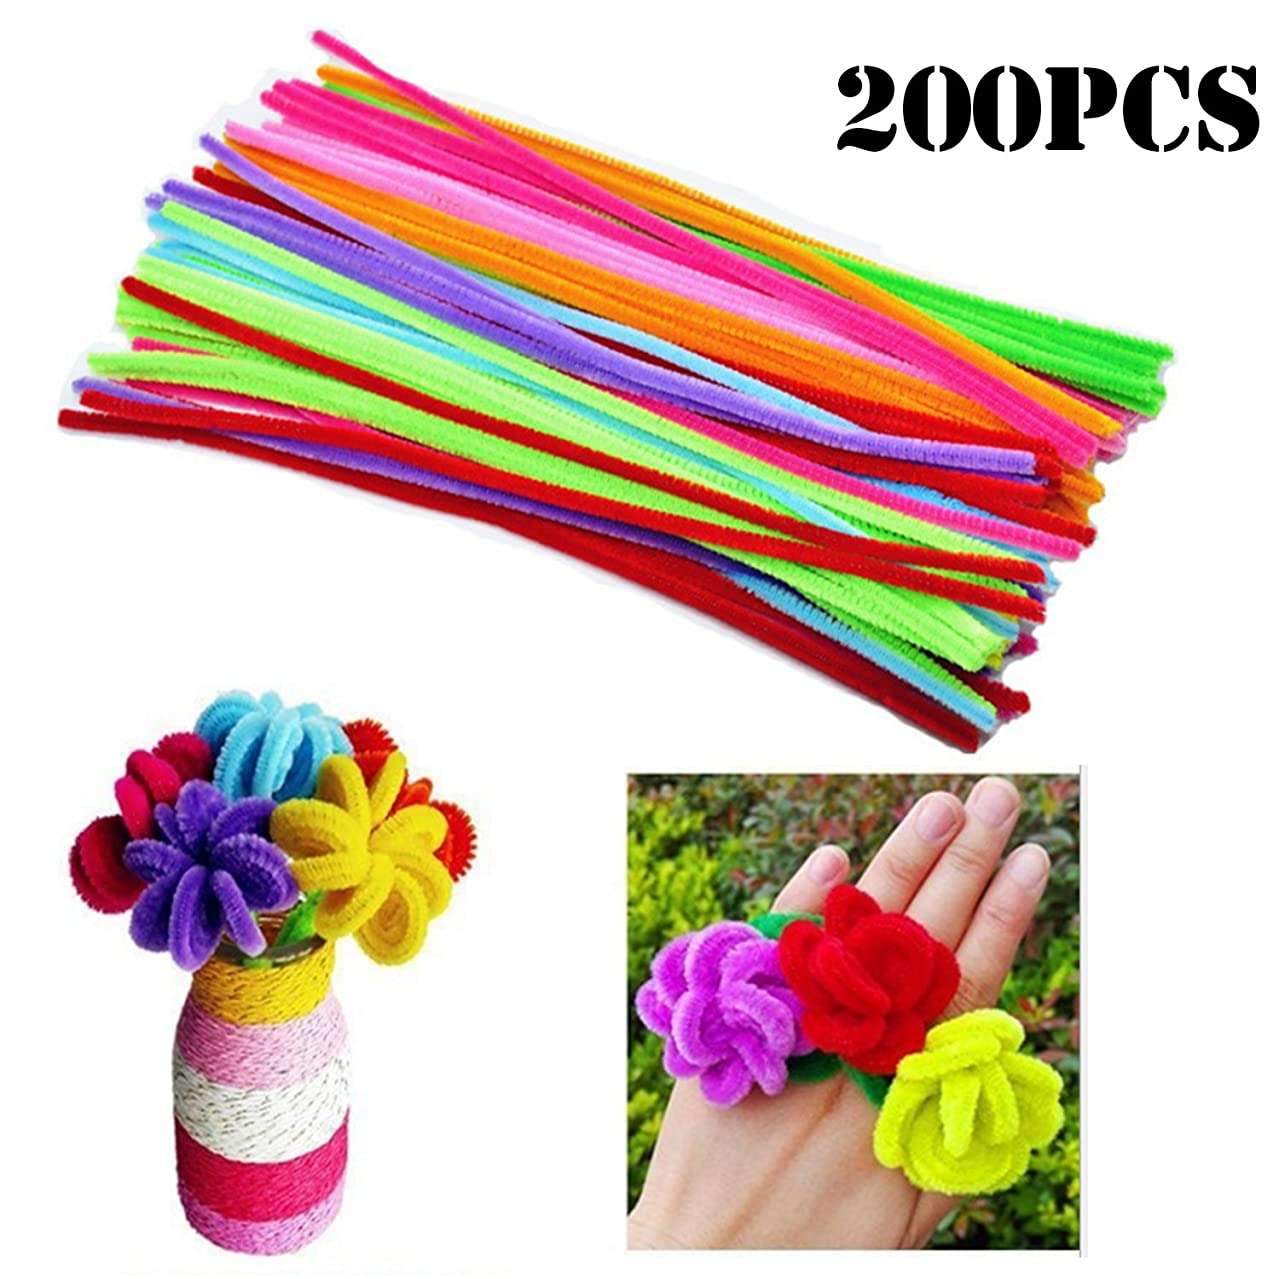 MANSHU 200 Pieces Pipe Cleaners 6 mm x 12 Inch for DIY Art Craft, 10 colors Mixed Pack